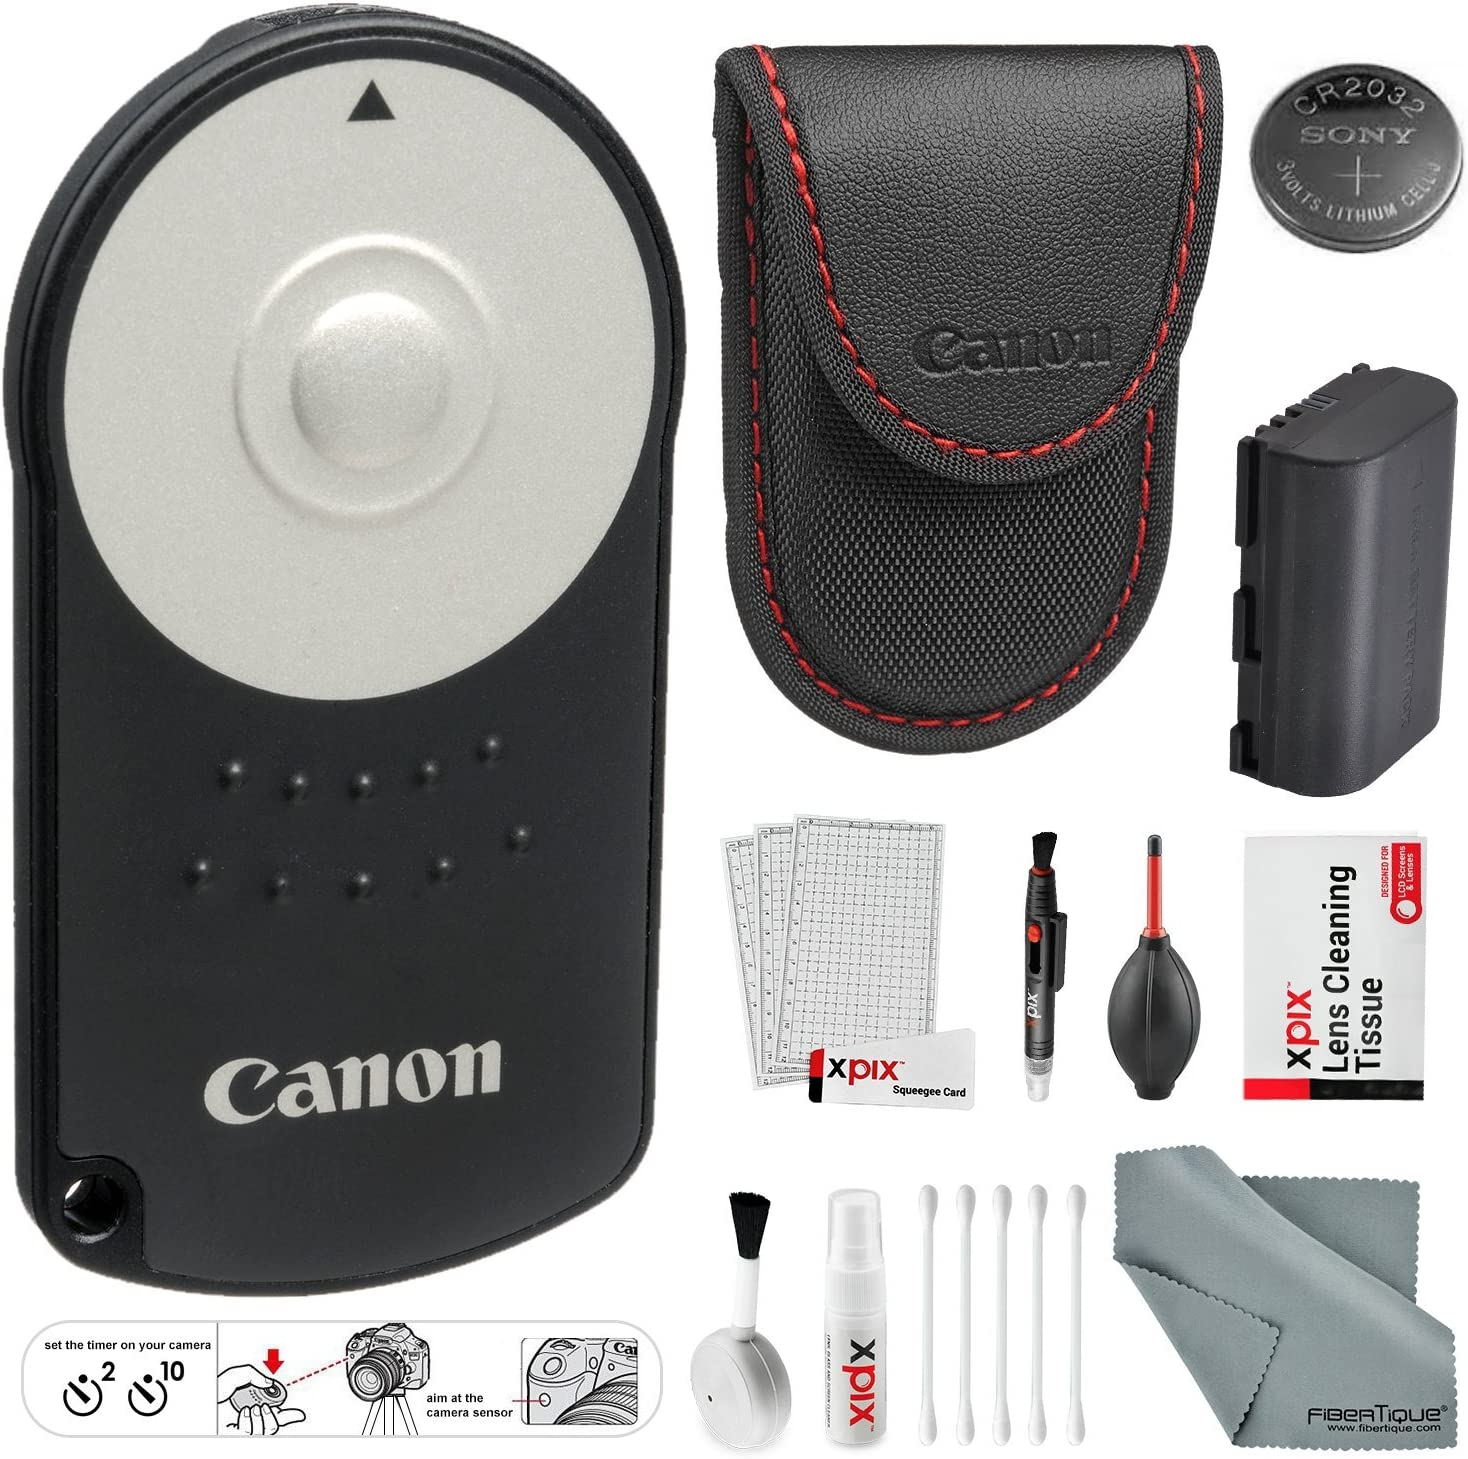 5D Mark III 70D 5DS for Canon EOS 5D Mark II 80D 7D Mark II 7D 5D Mark IV 5DS R Canon RC-6 Wireless Remote Control and Extra LP-E6 Battery 6D and XPIX Accessories